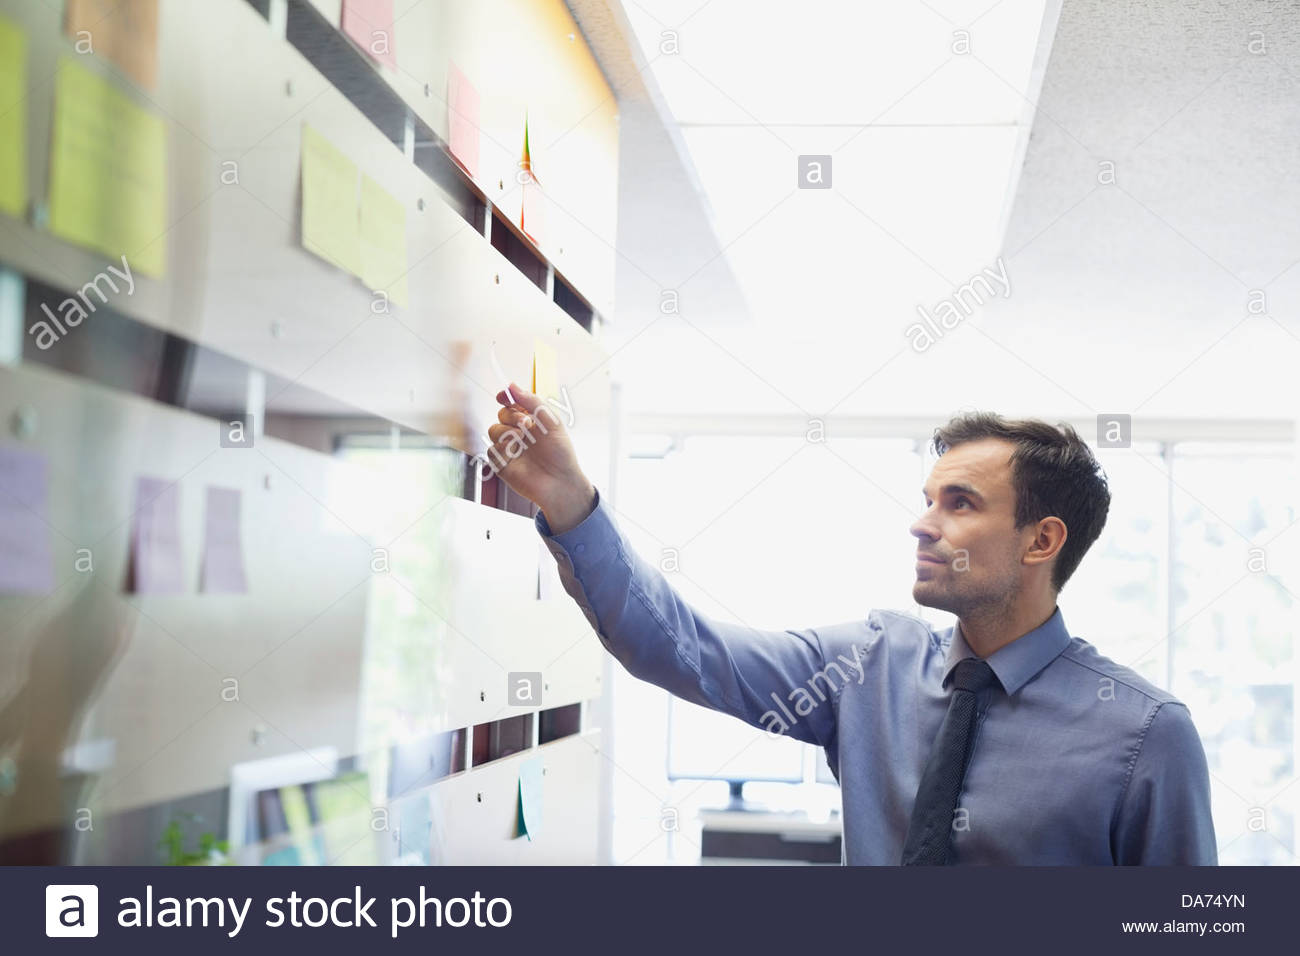 Businessman putting sticky note on wall Photo Stock